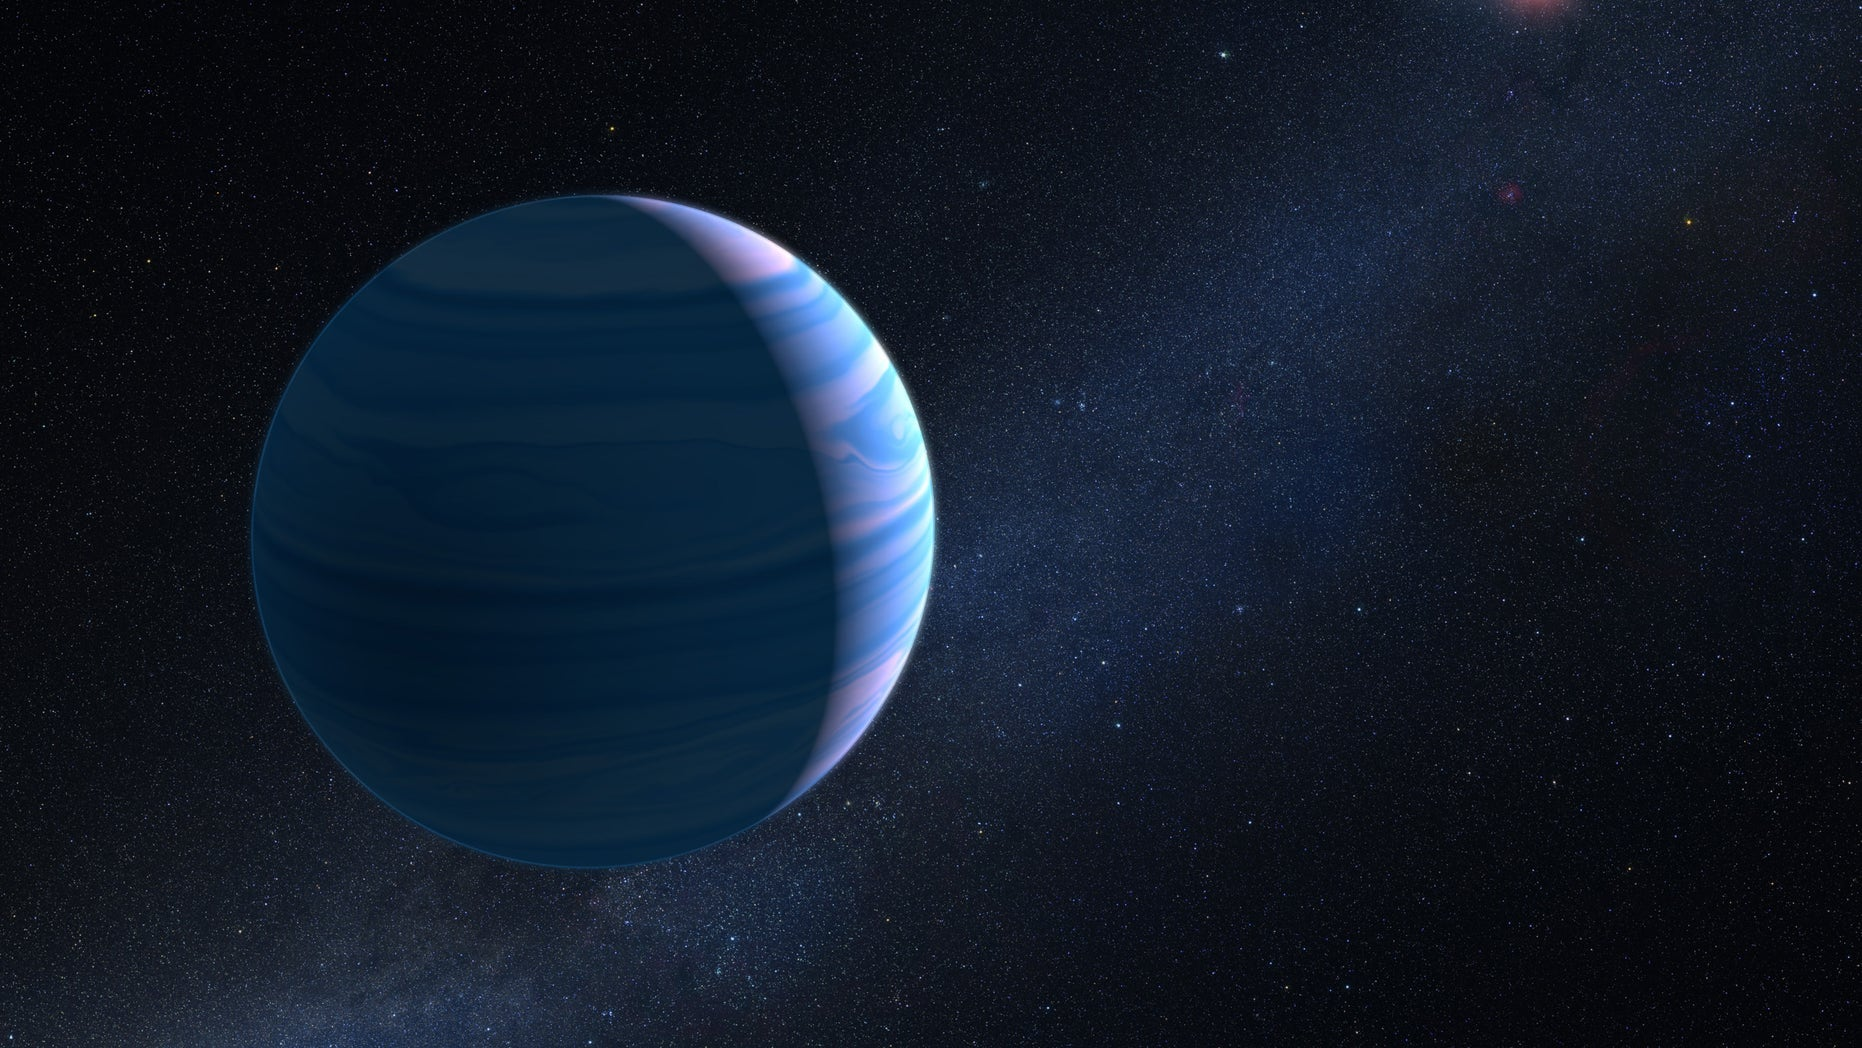 This artist's illustration shows a gas giant planet circling a pair of red dwarf stars in the system OGLE-2007-BLG-349.